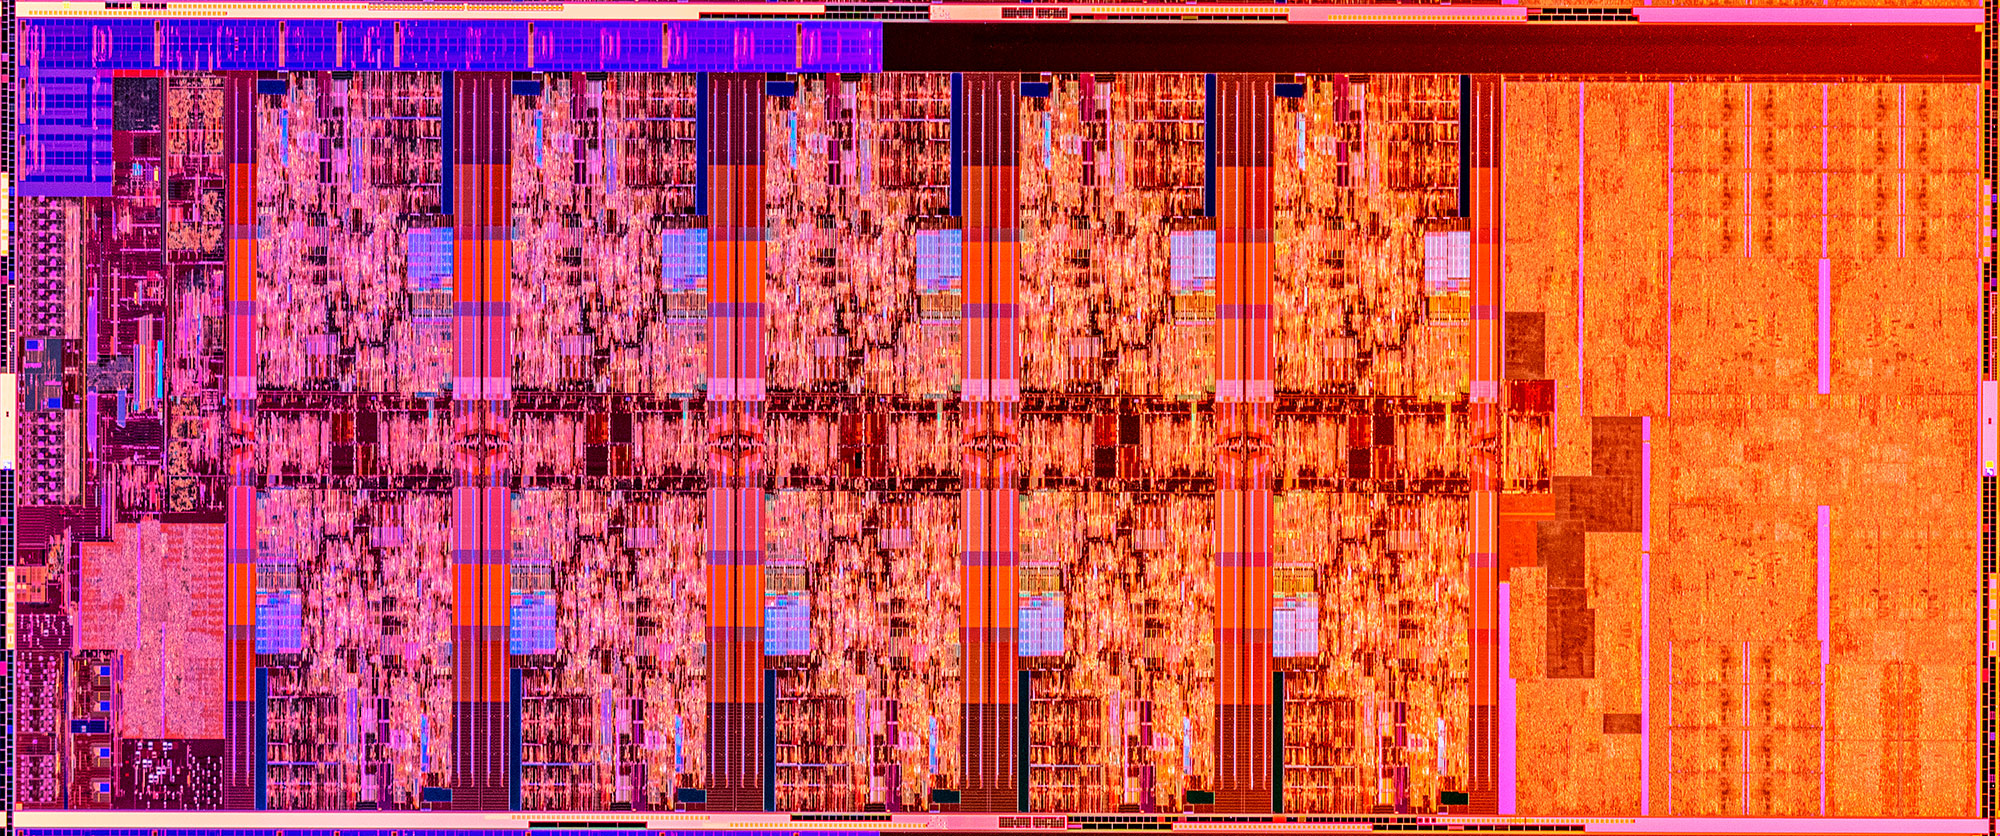 Intel Comet Lake Xeon W Listed Early: Server CPU Specs Surface